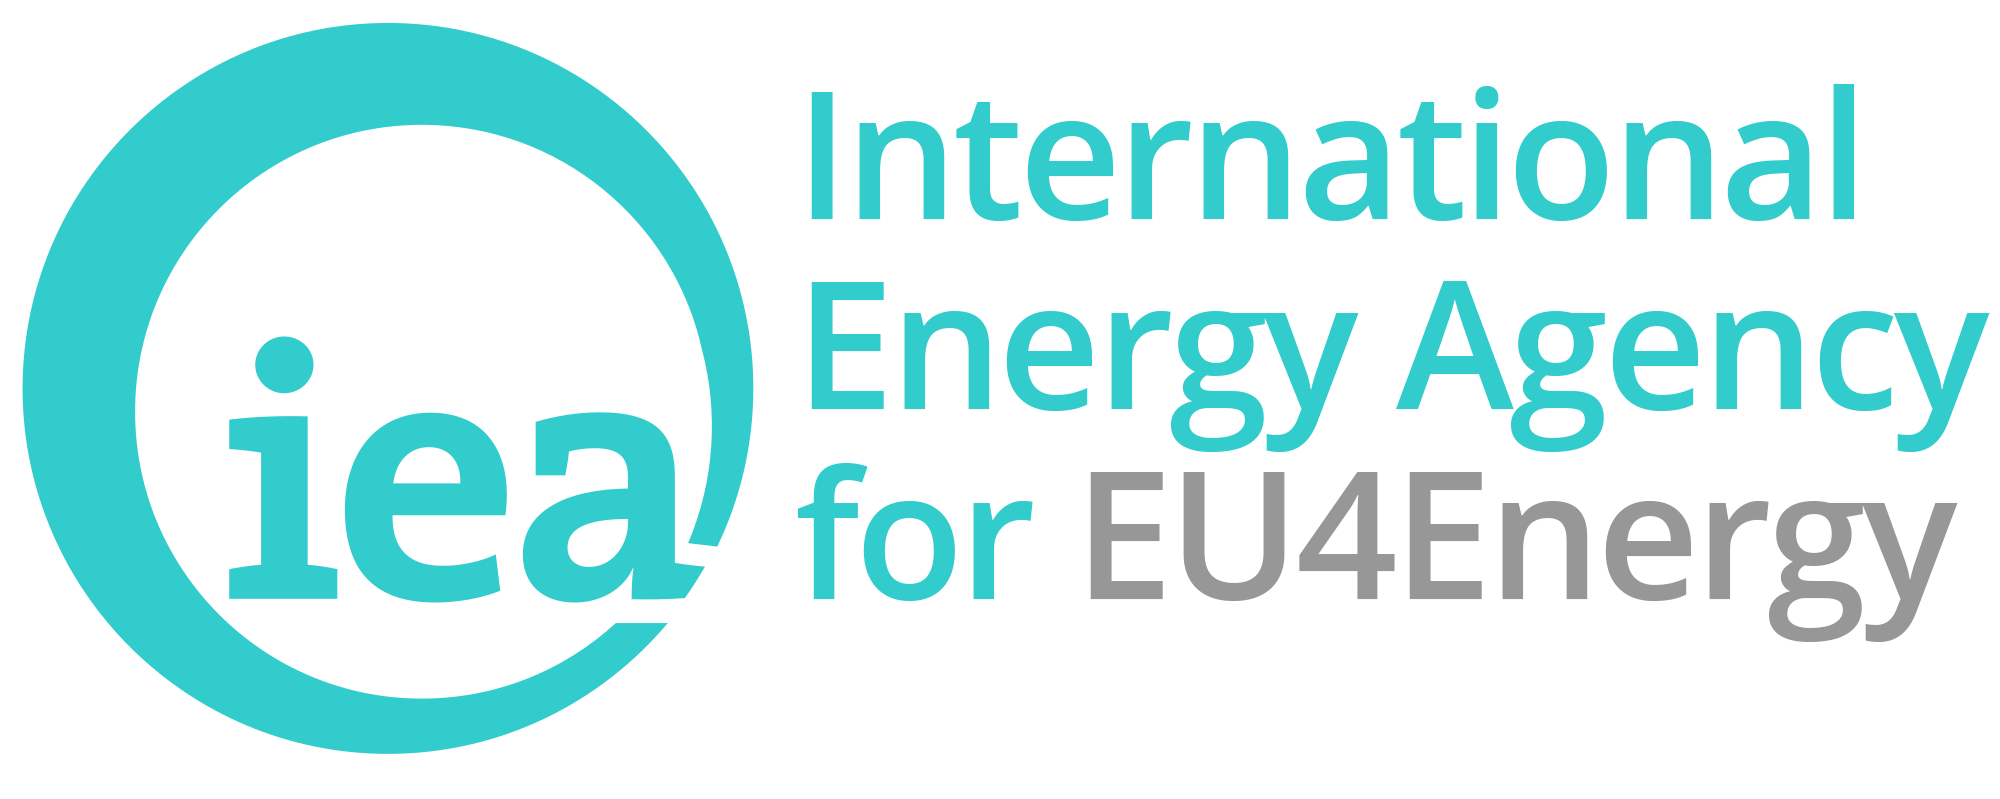 iea for Eu4Energy